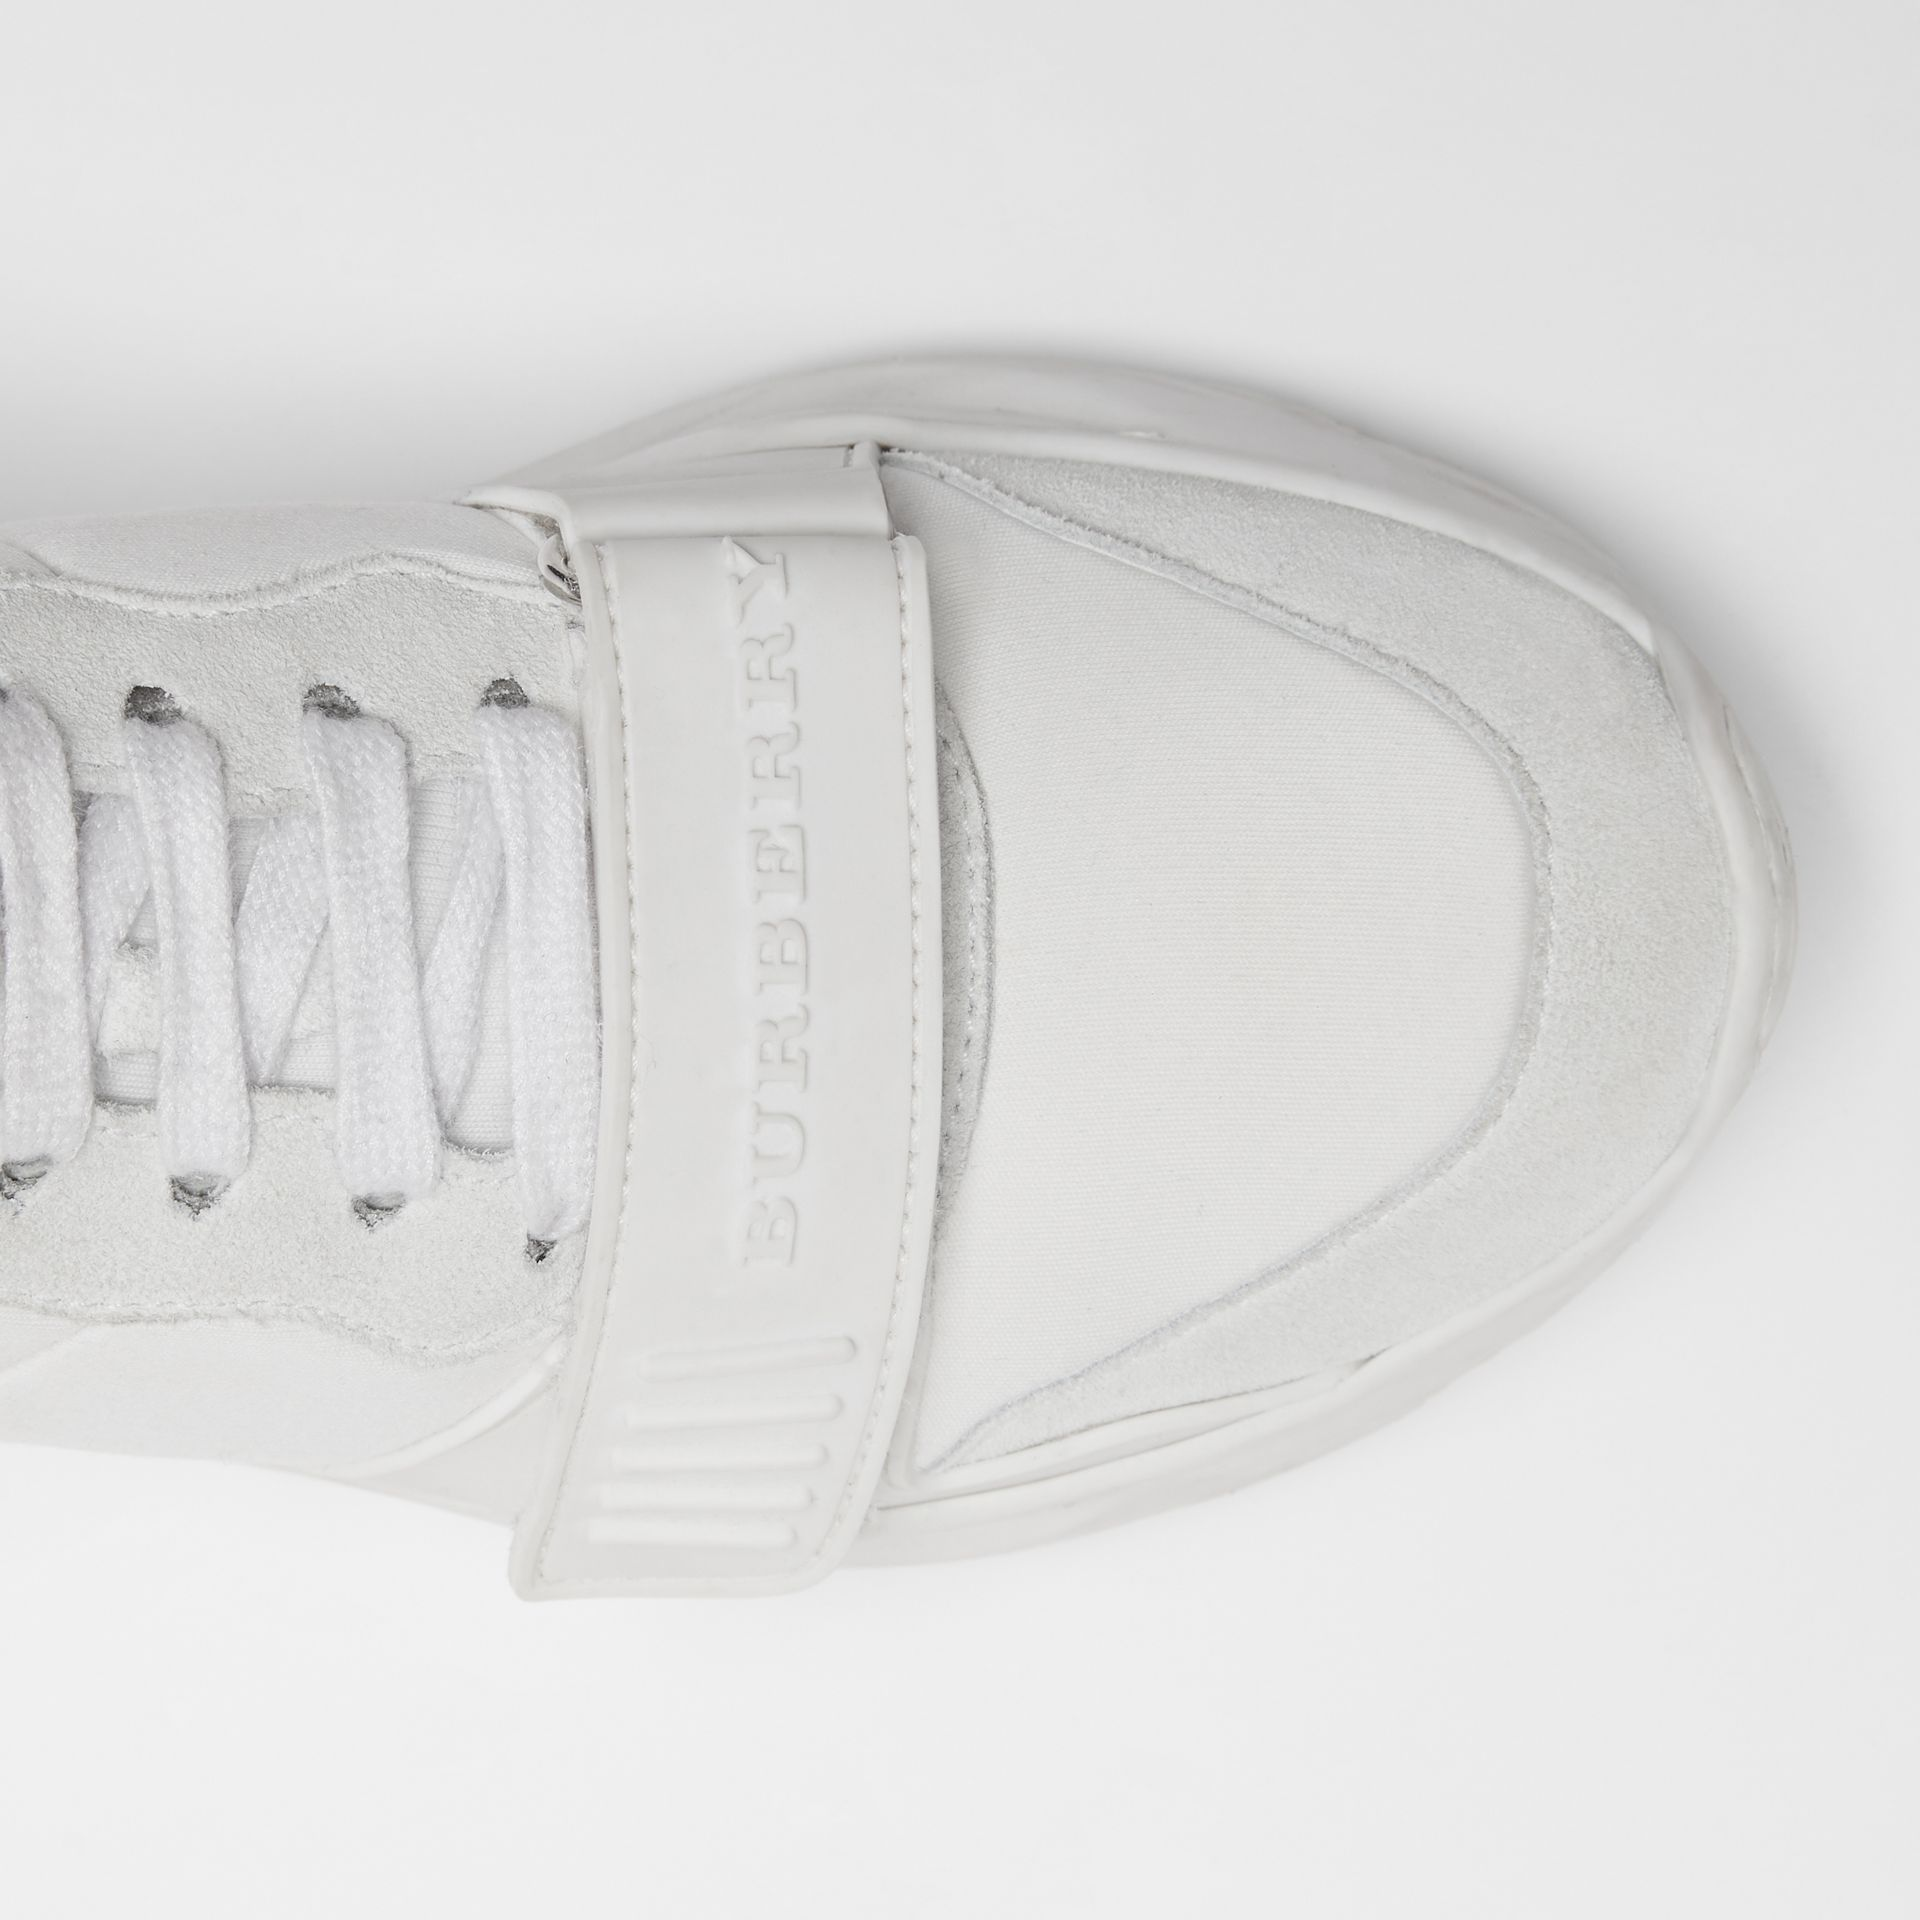 Suede, Neoprene and Leather Sneakers in Optic White - Women | Burberry United Kingdom - gallery image 1